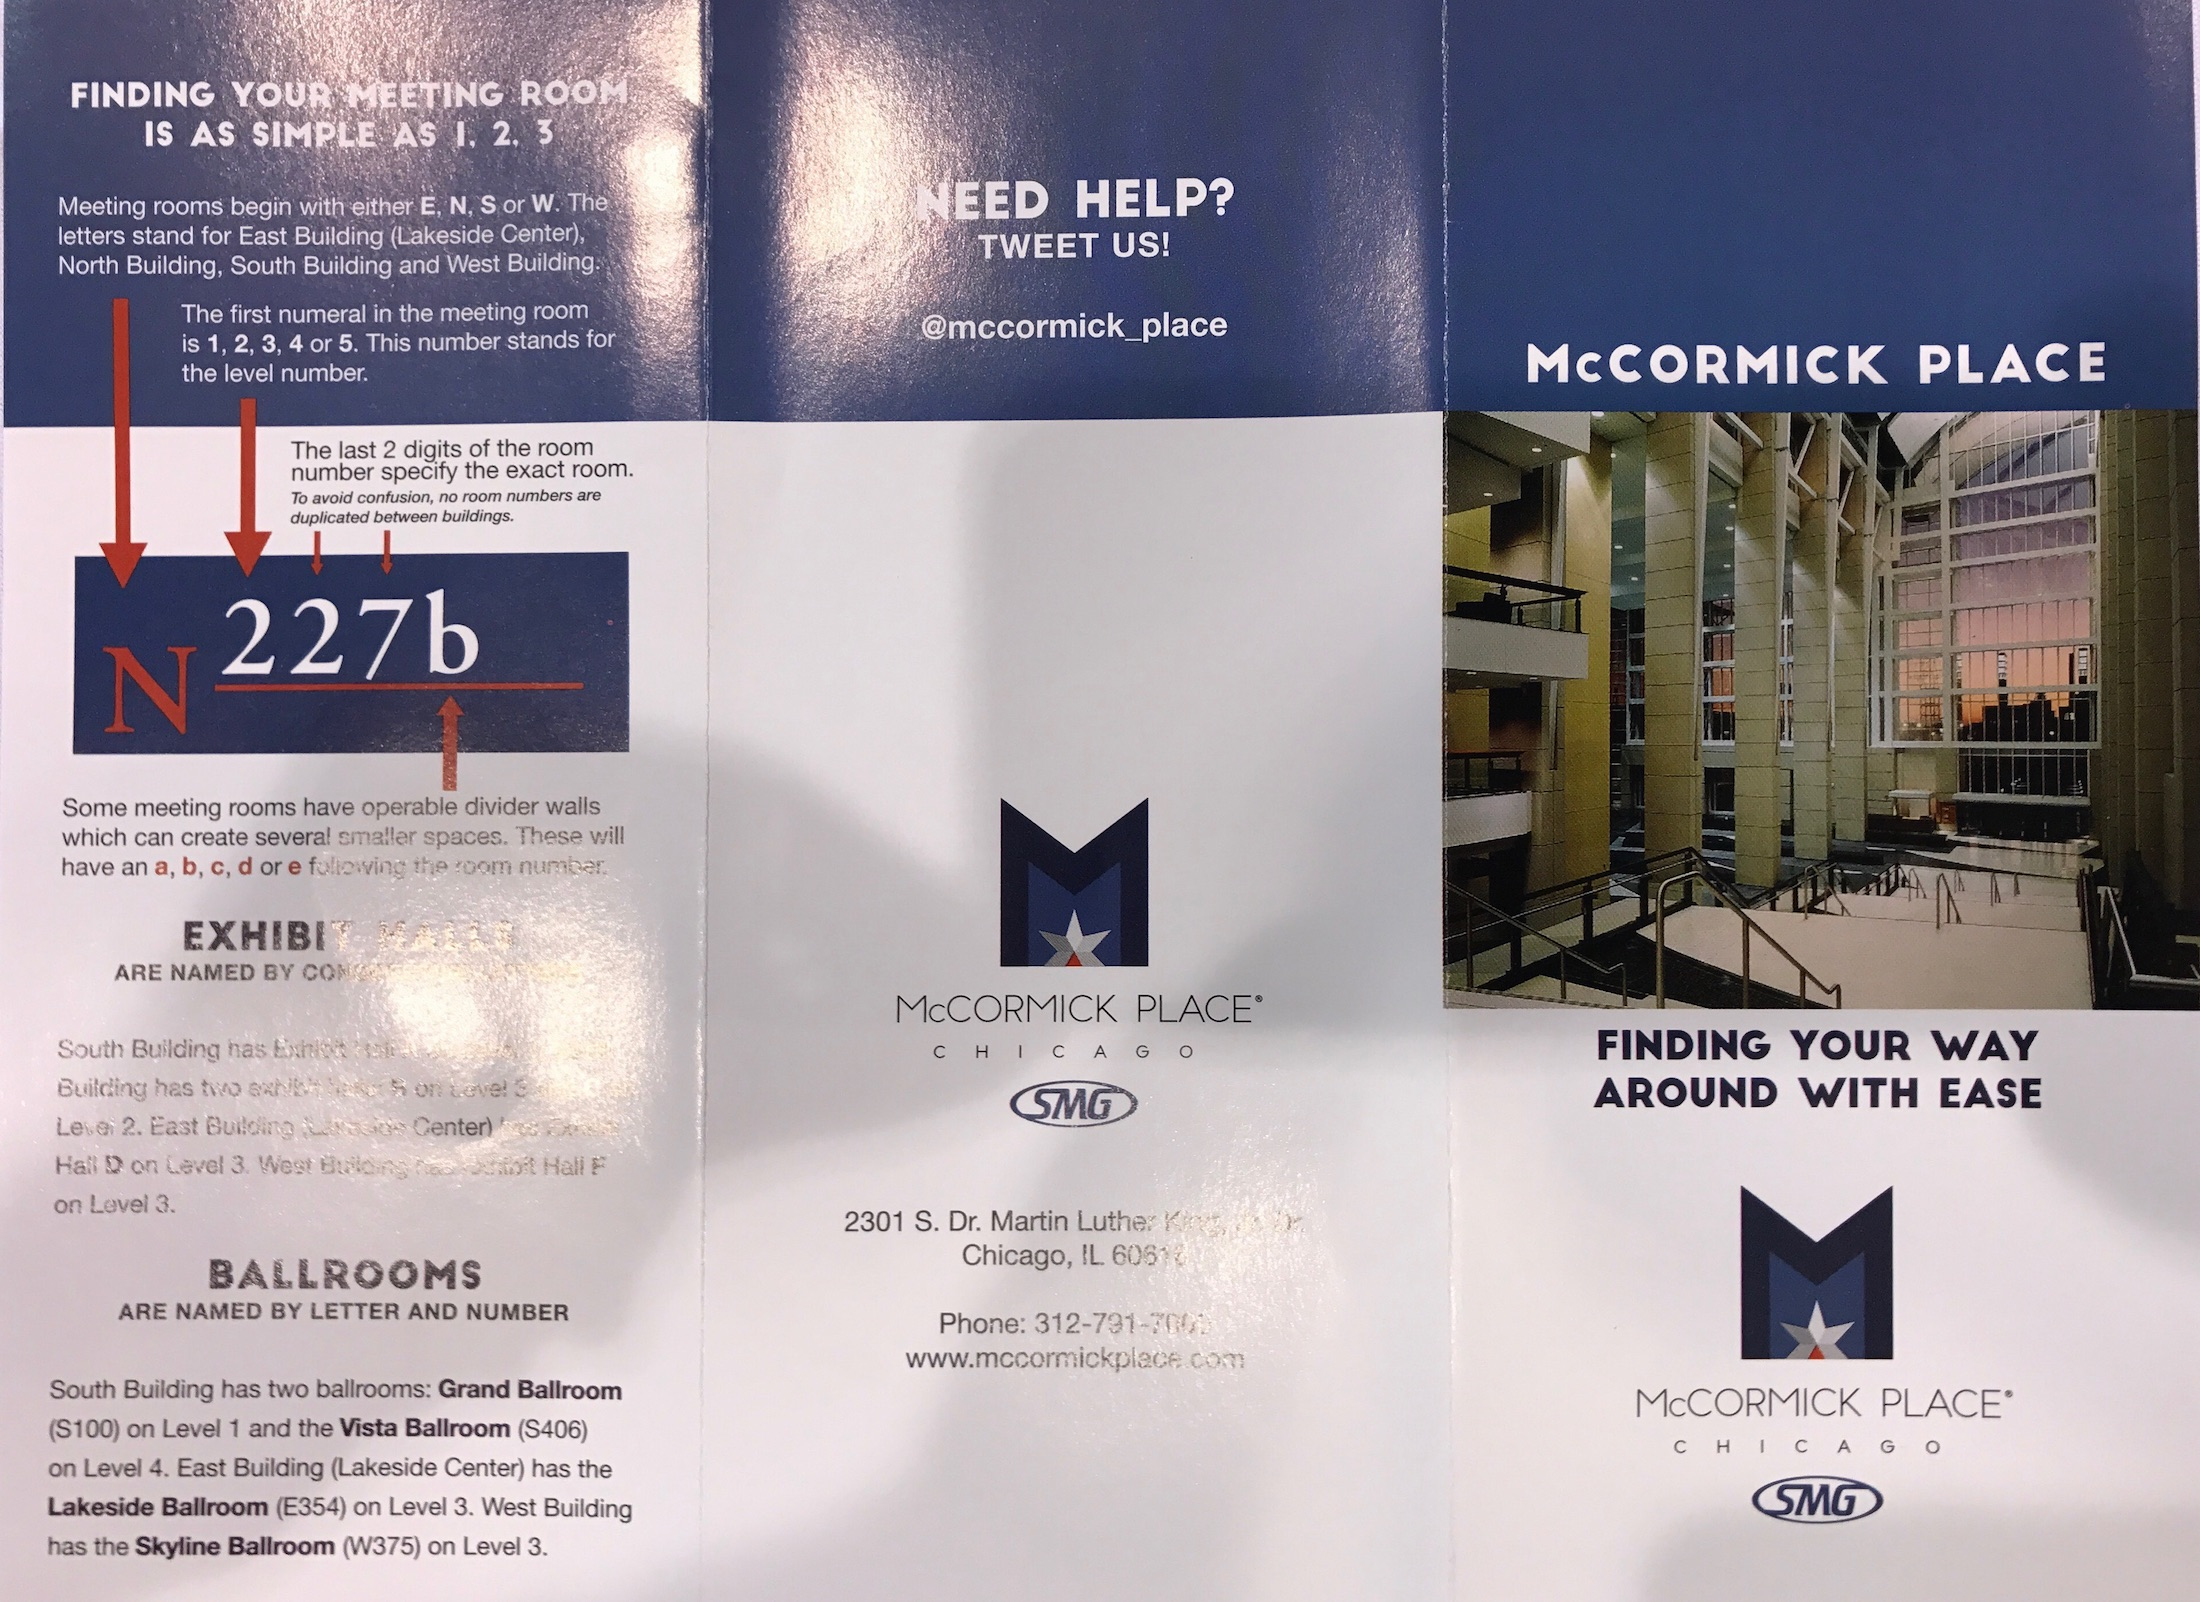 mccormick place chicago pamphlet